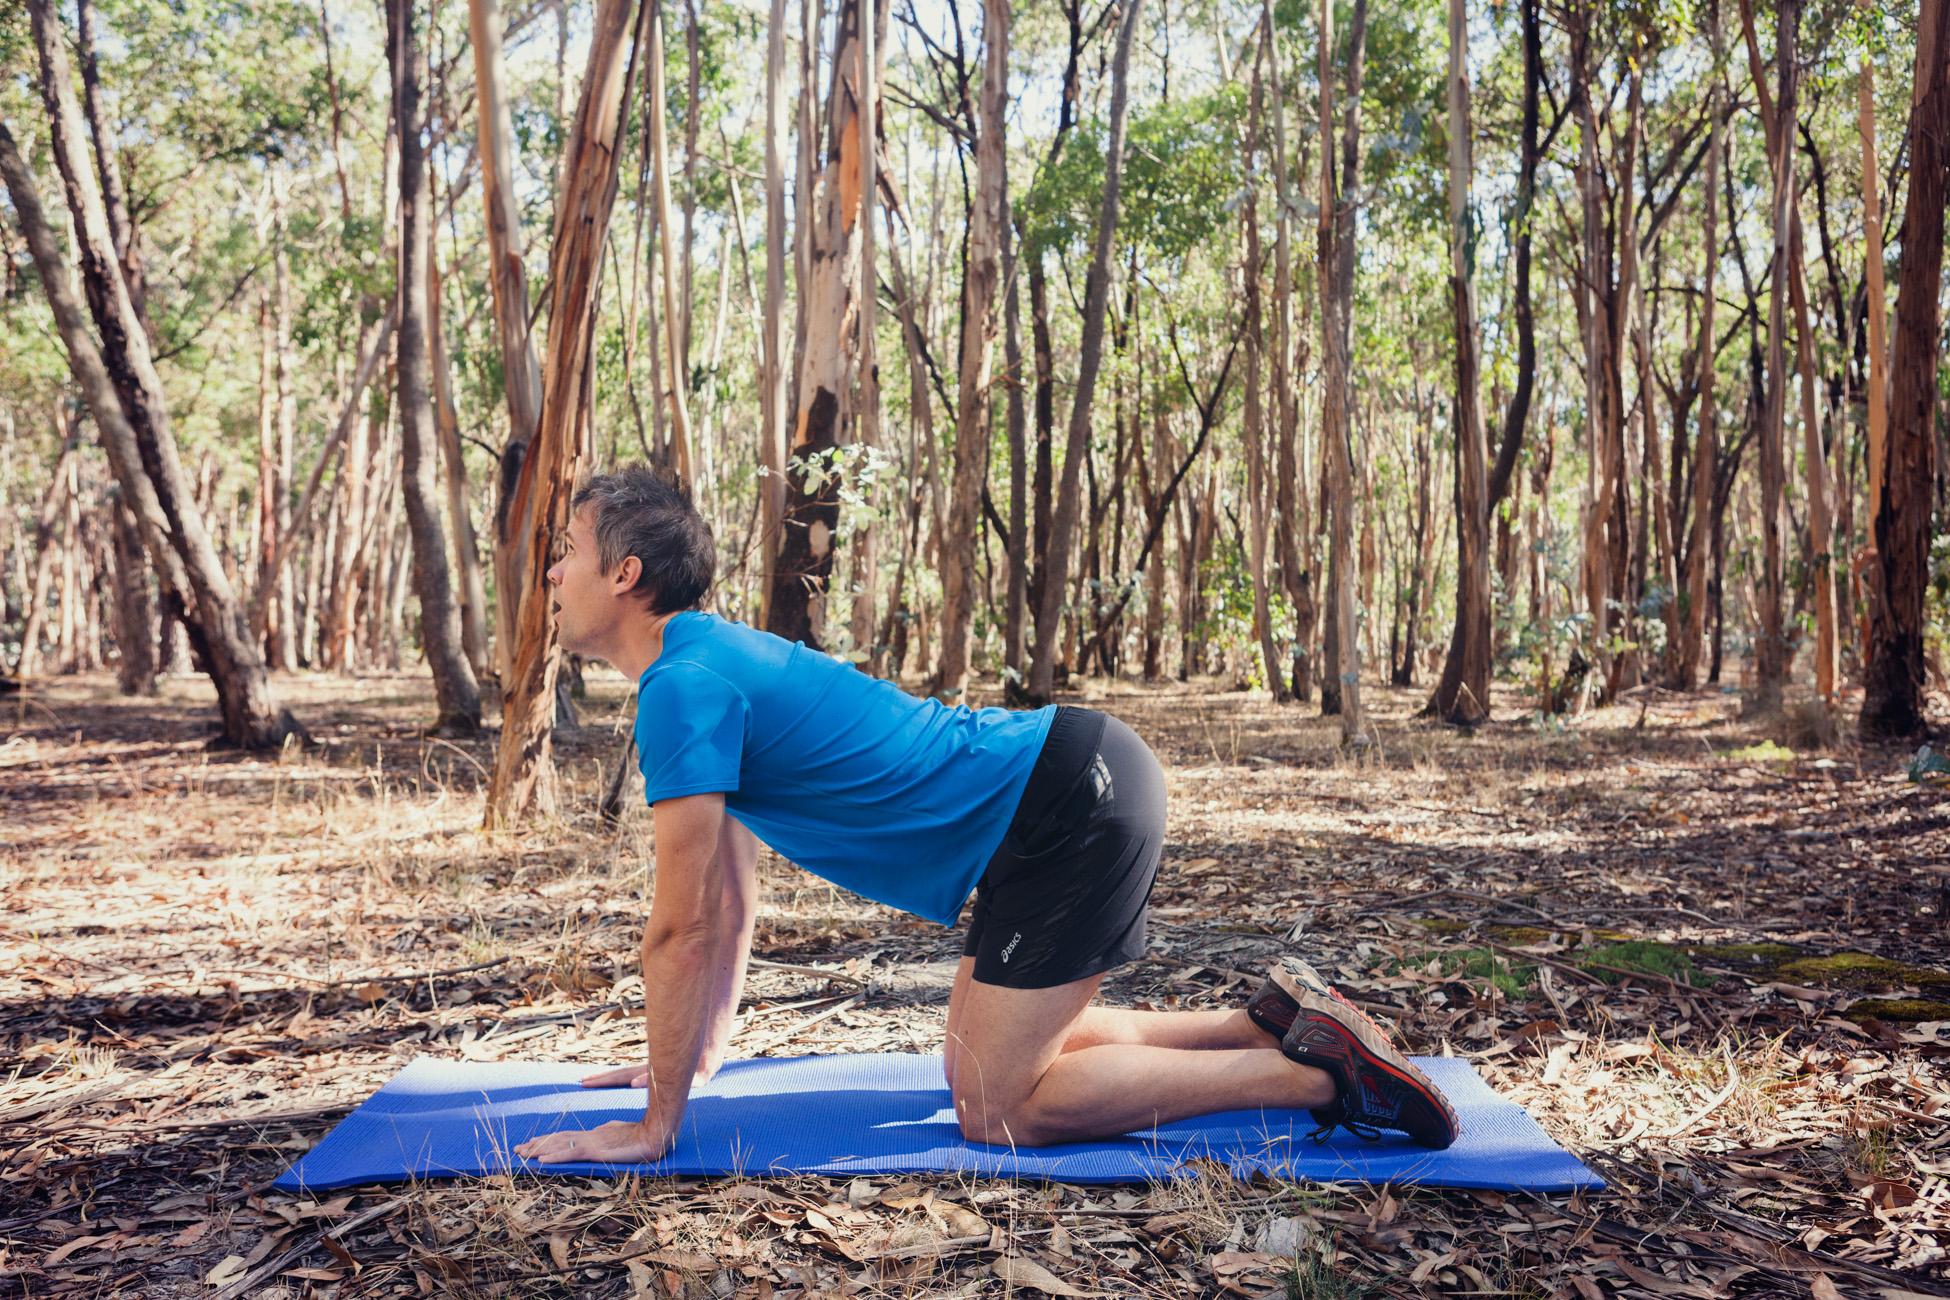 Start on your hands and knees with your back in a neutral position. Arch your back, lifting your head up and pushing your tail bone out, making a dish with your spine. Hold this position for one breath.